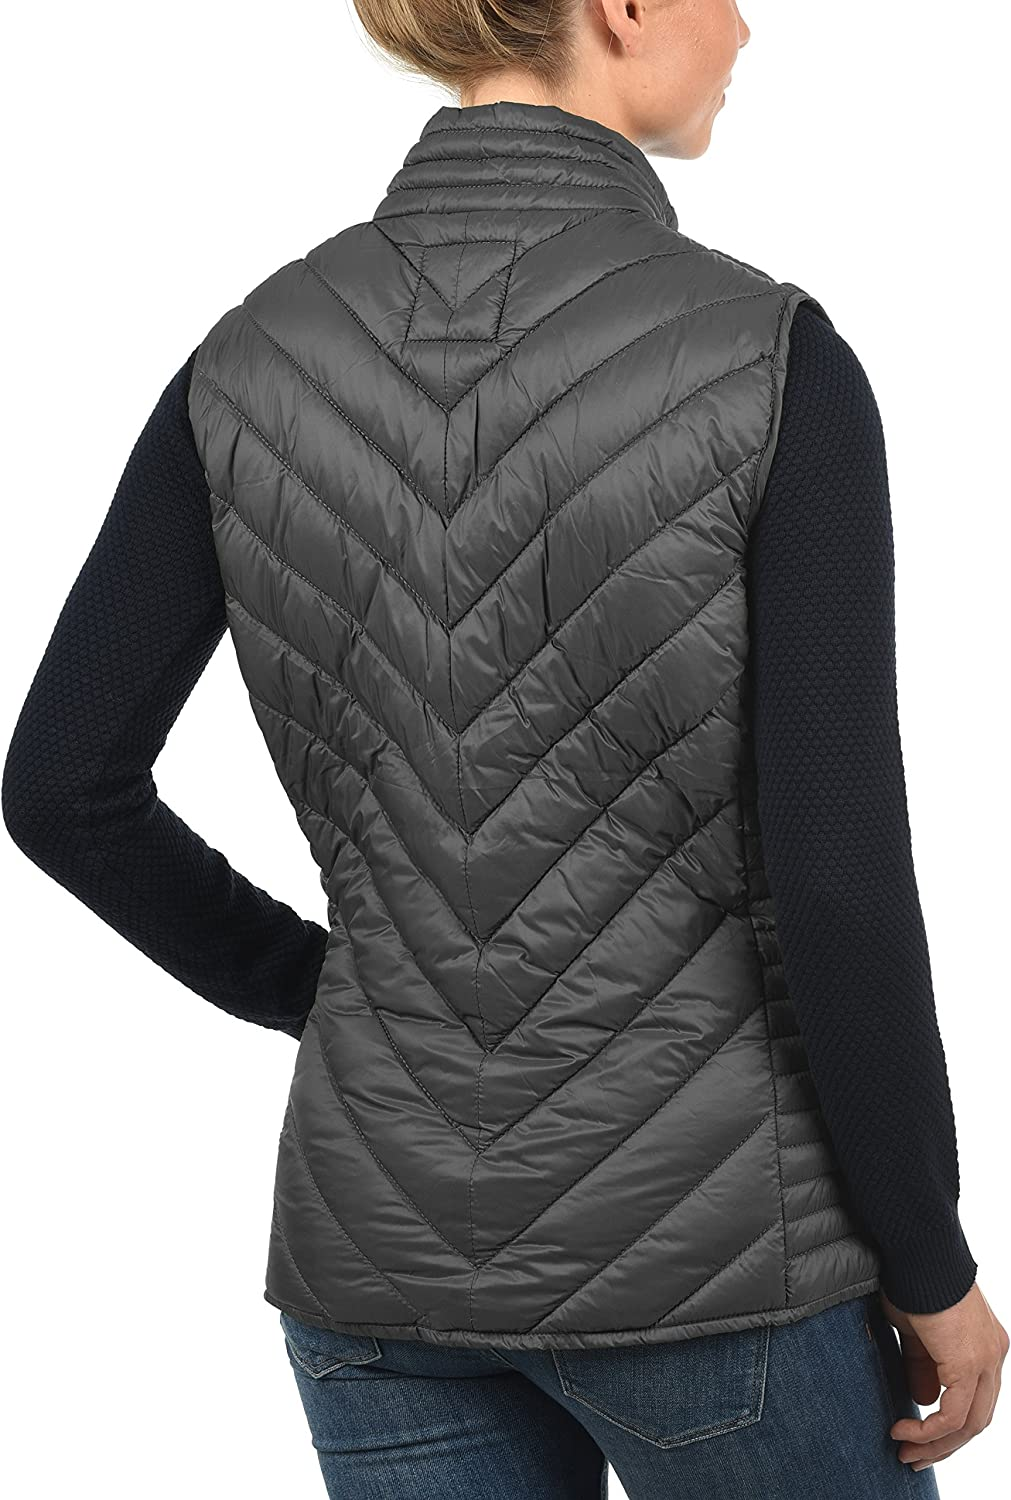 BlendShe Sadie Womens Quilted Gilet Vest Body Warmer with Funnel Neck